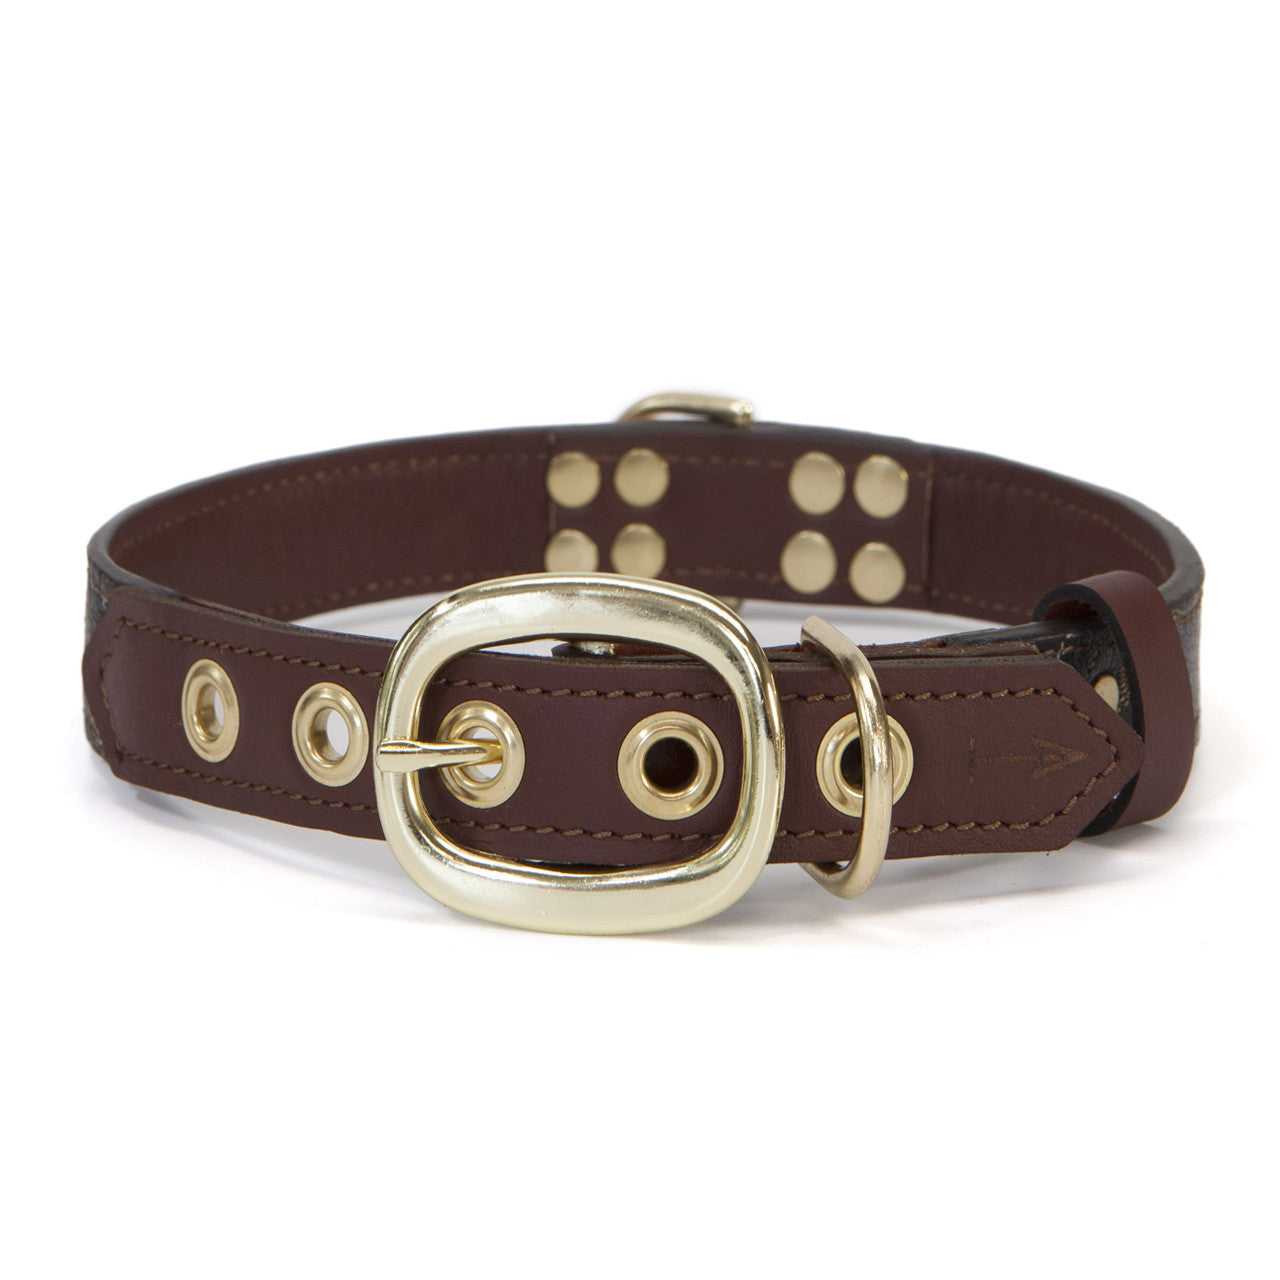 Mahogany Brown Dog Collar with Black Leather + Tan/Light Brown Stitching (back view)